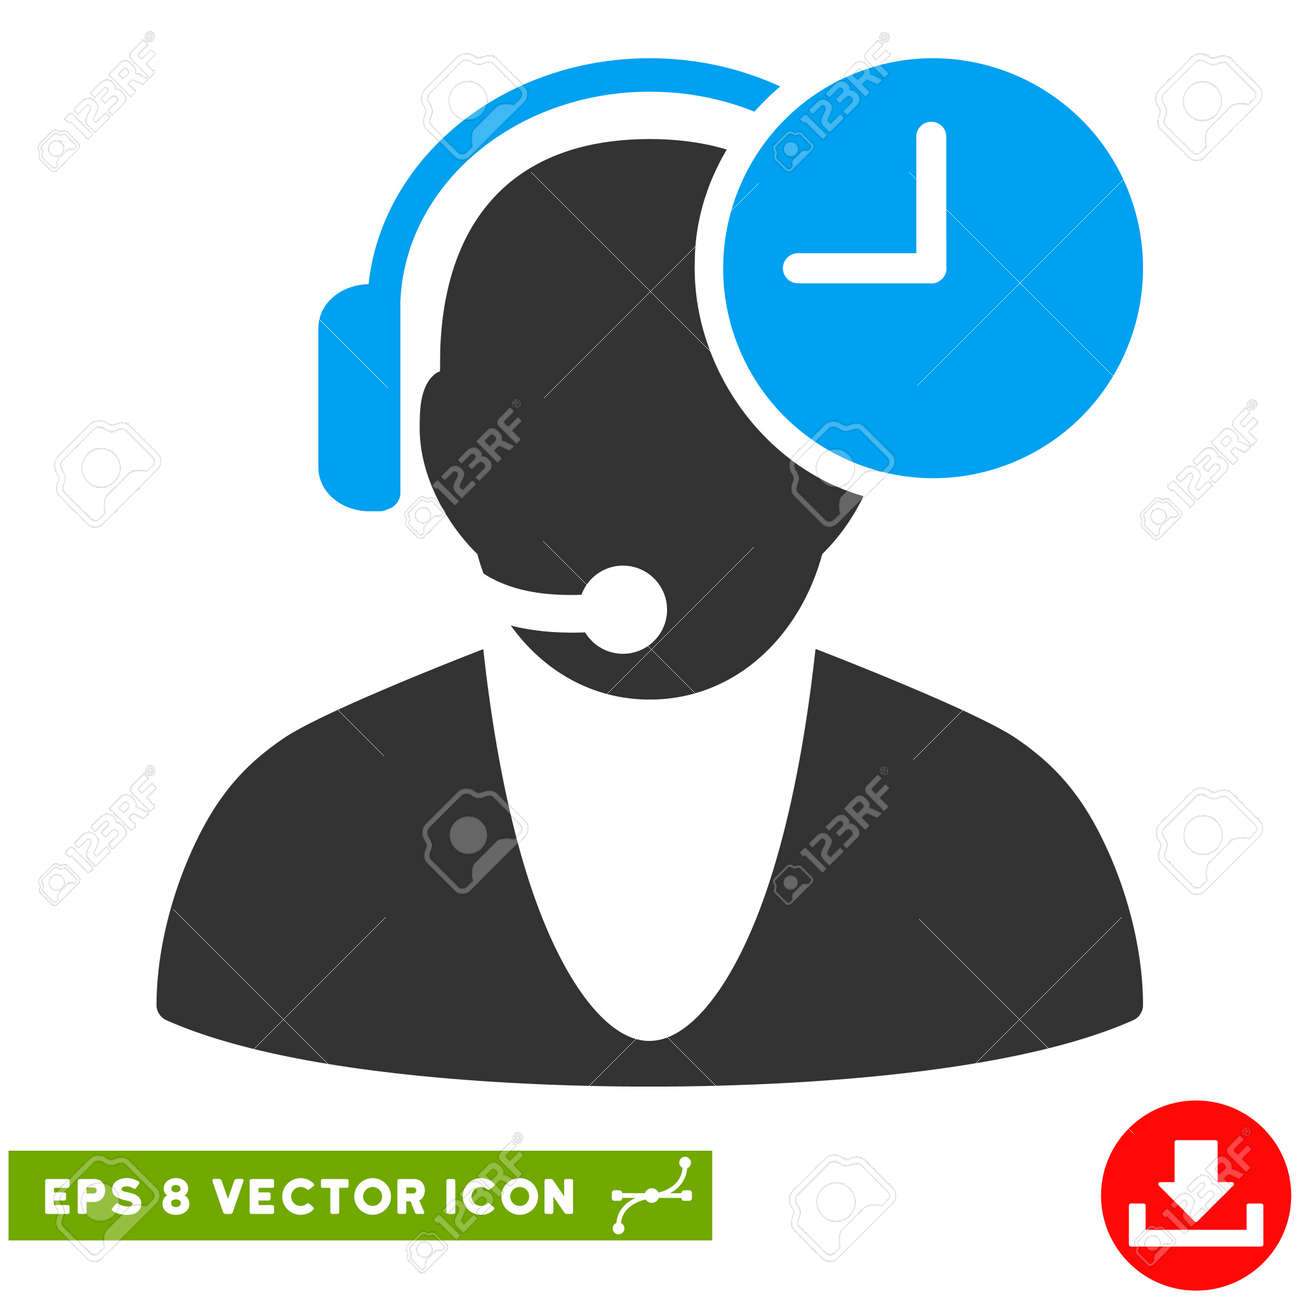 Operator time eps vector pictograph illustration style is flat operator time eps vector pictograph illustration style is flat iconic bicolor blue and gray symbol buycottarizona